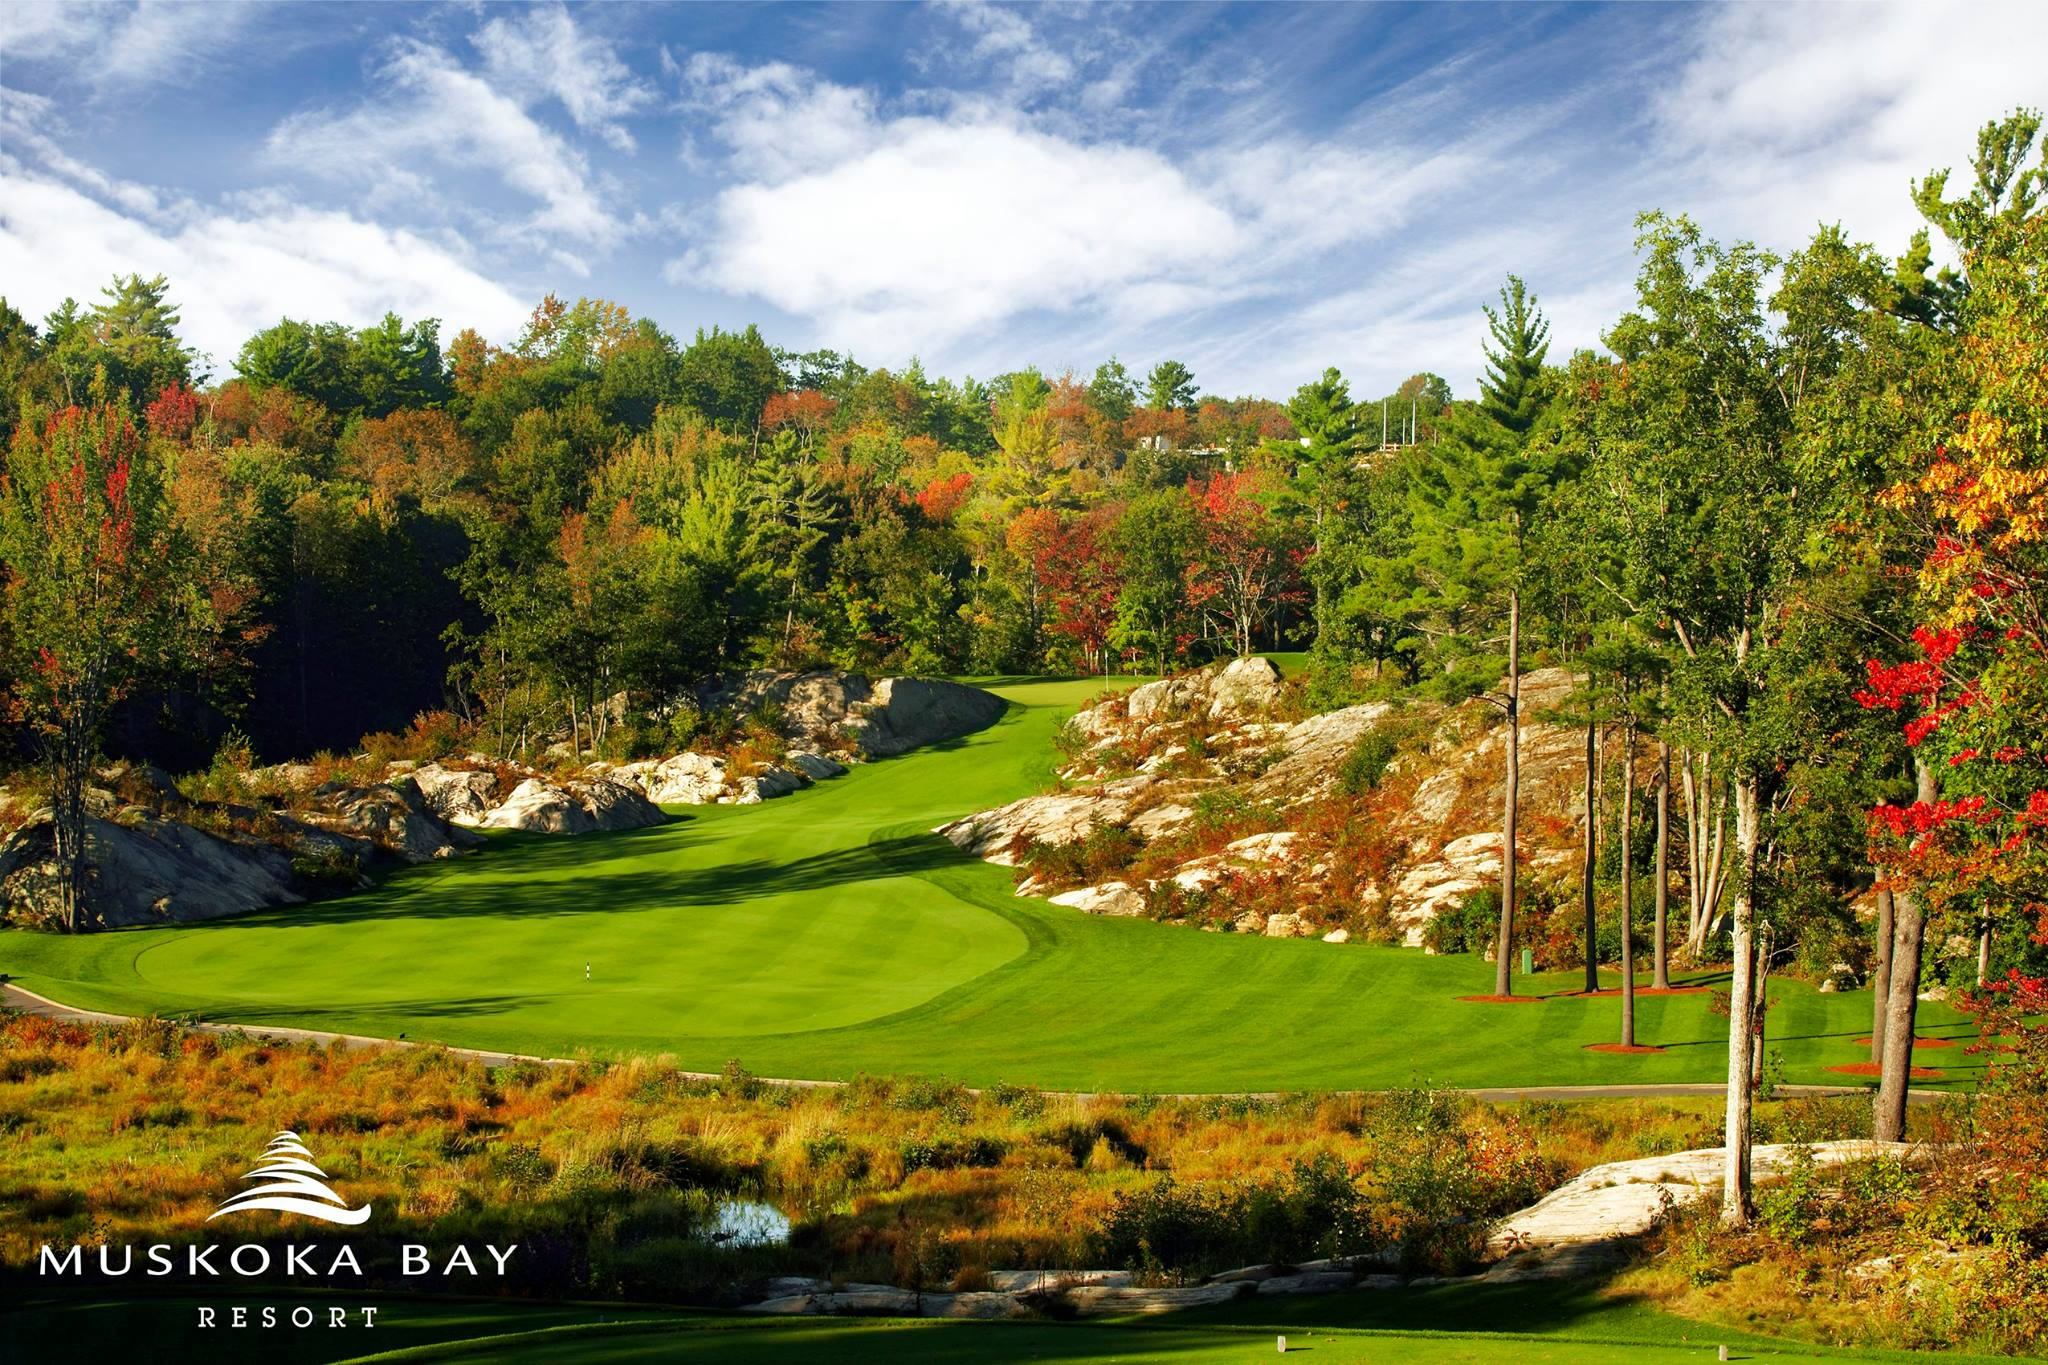 muskoka-bay-golf-course-21